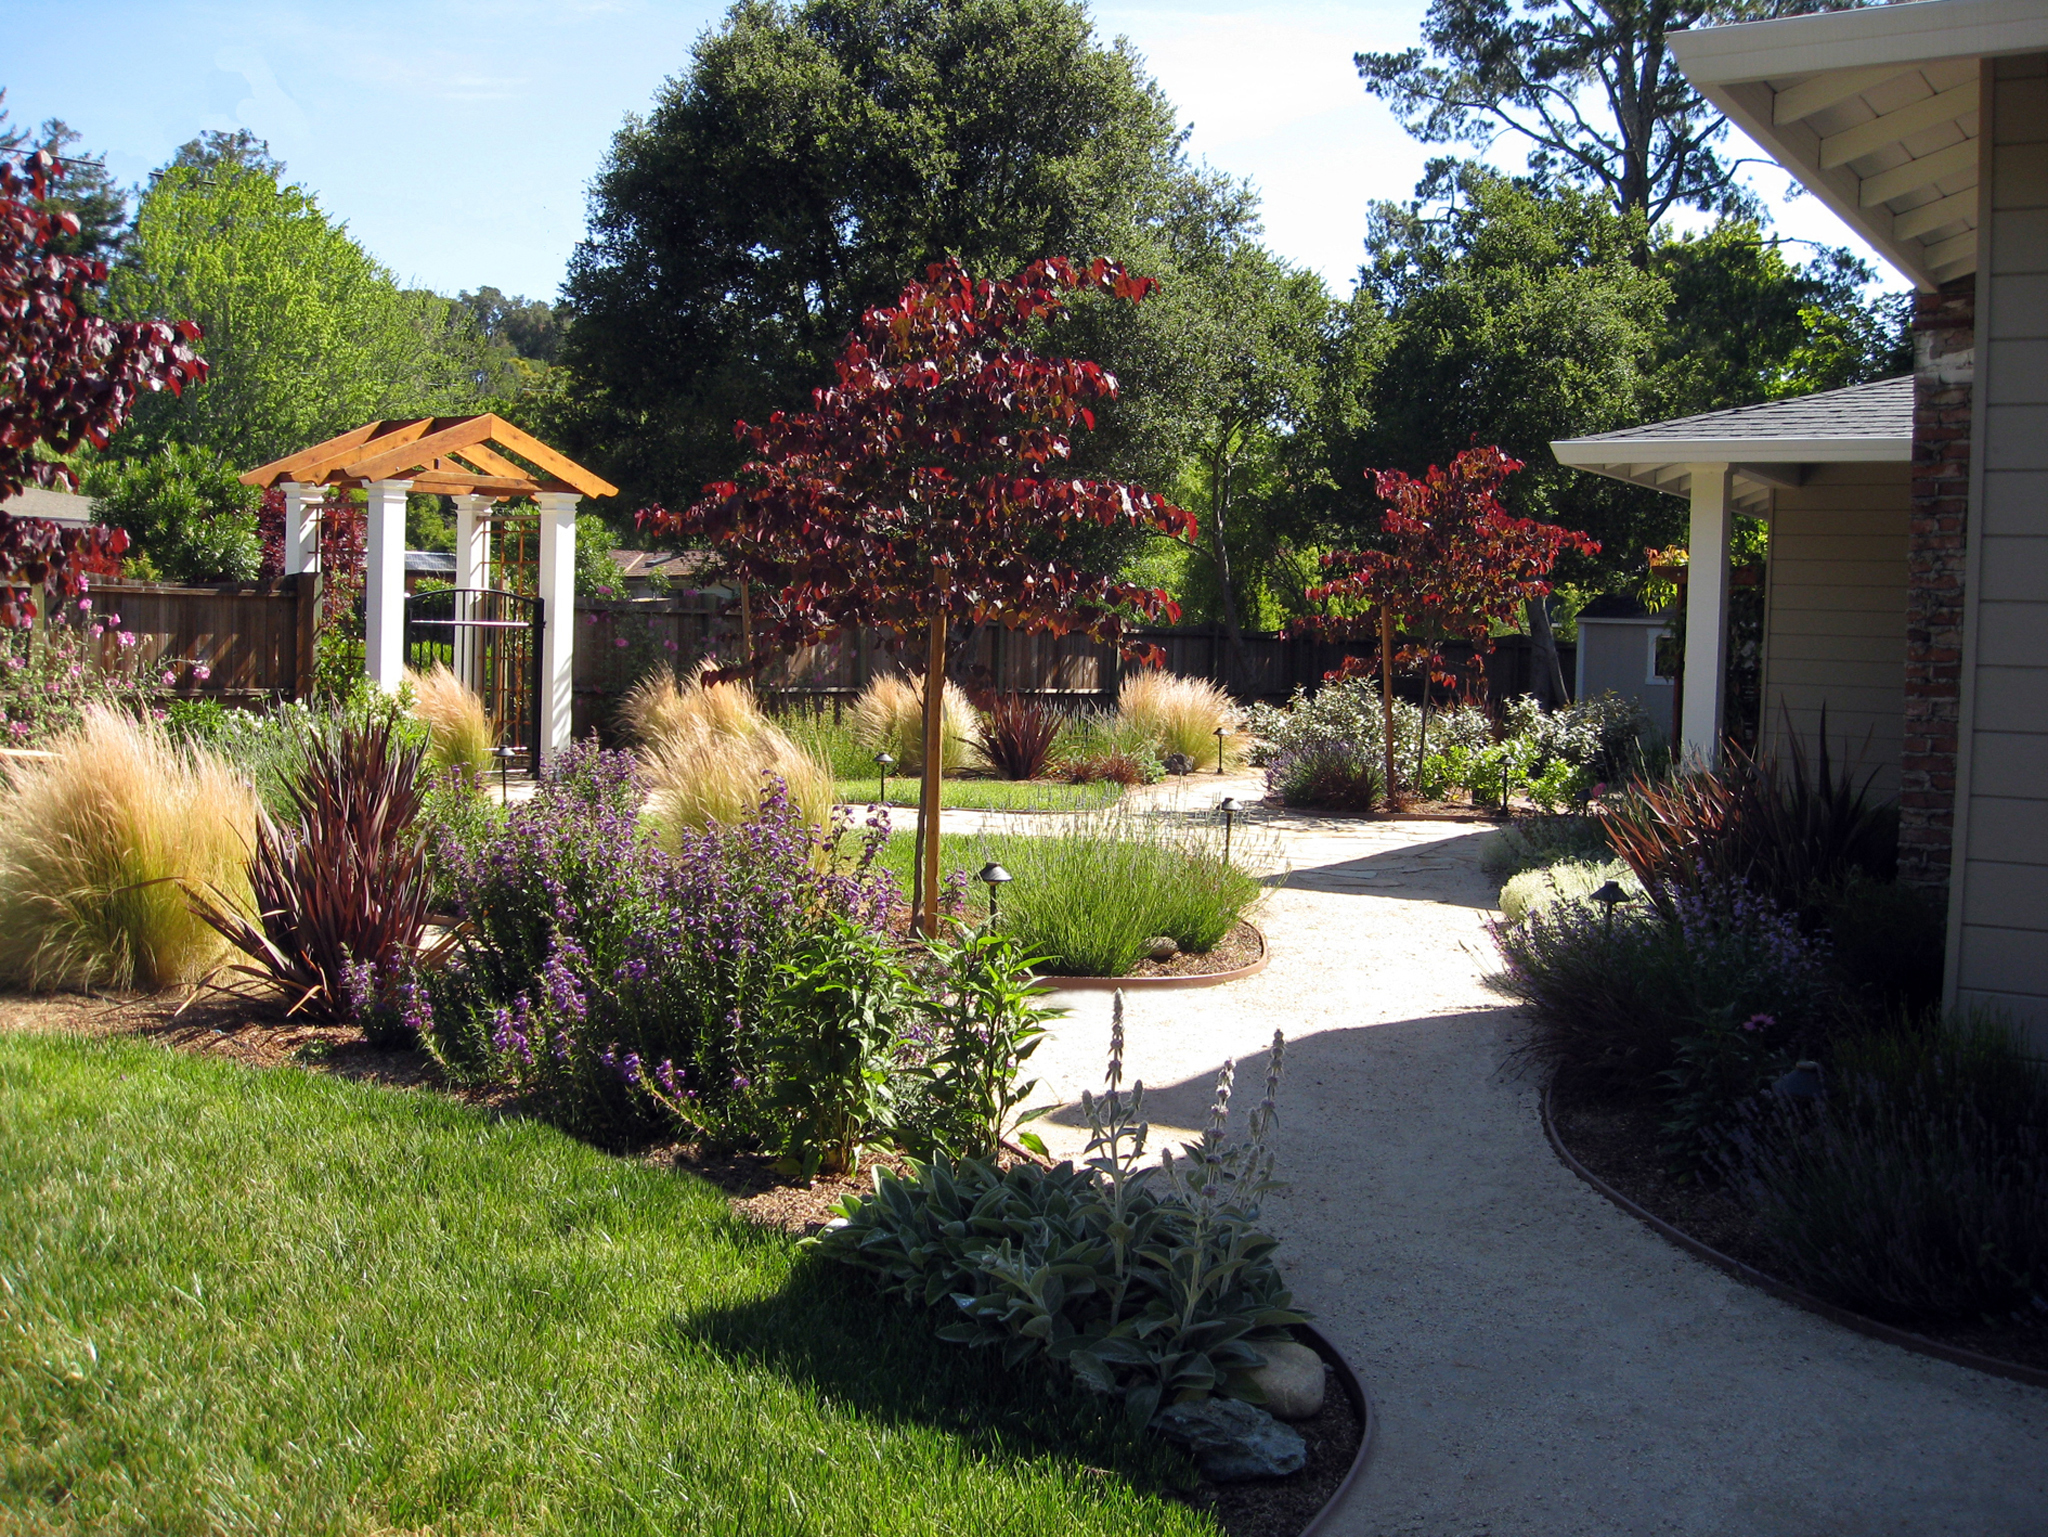 Some Ideas of Front Yard Landscaping for a Small Front ... on Small Yard Landscaping Ideas id=83444